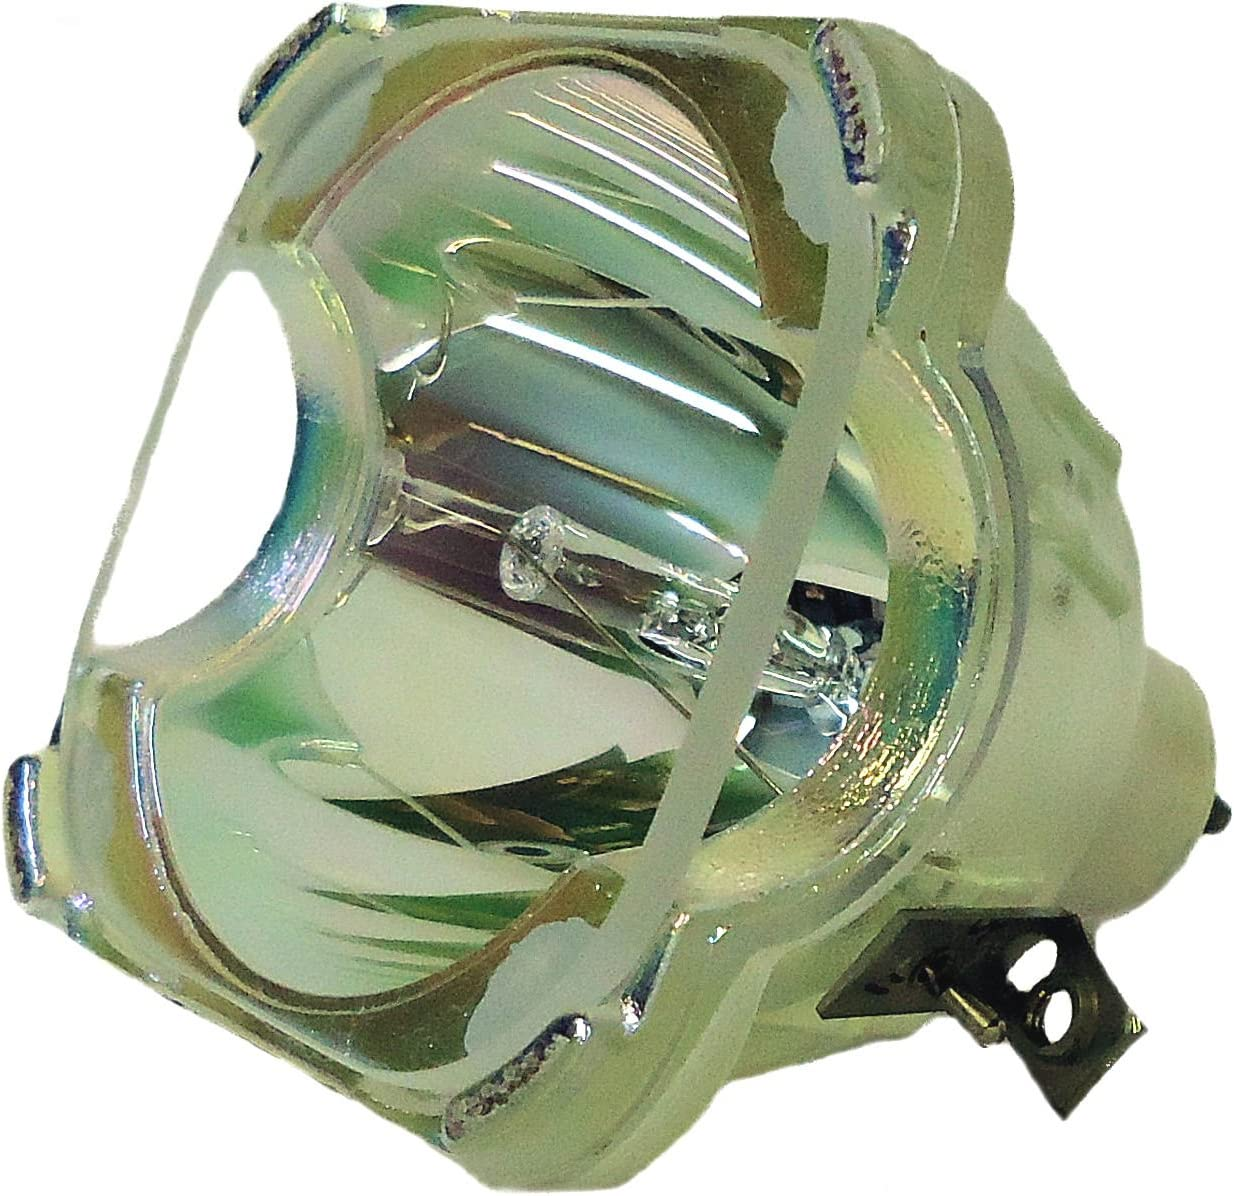 Original LG or Zenith 6912B22007B DLP Replacement Lamp-Bulb Only